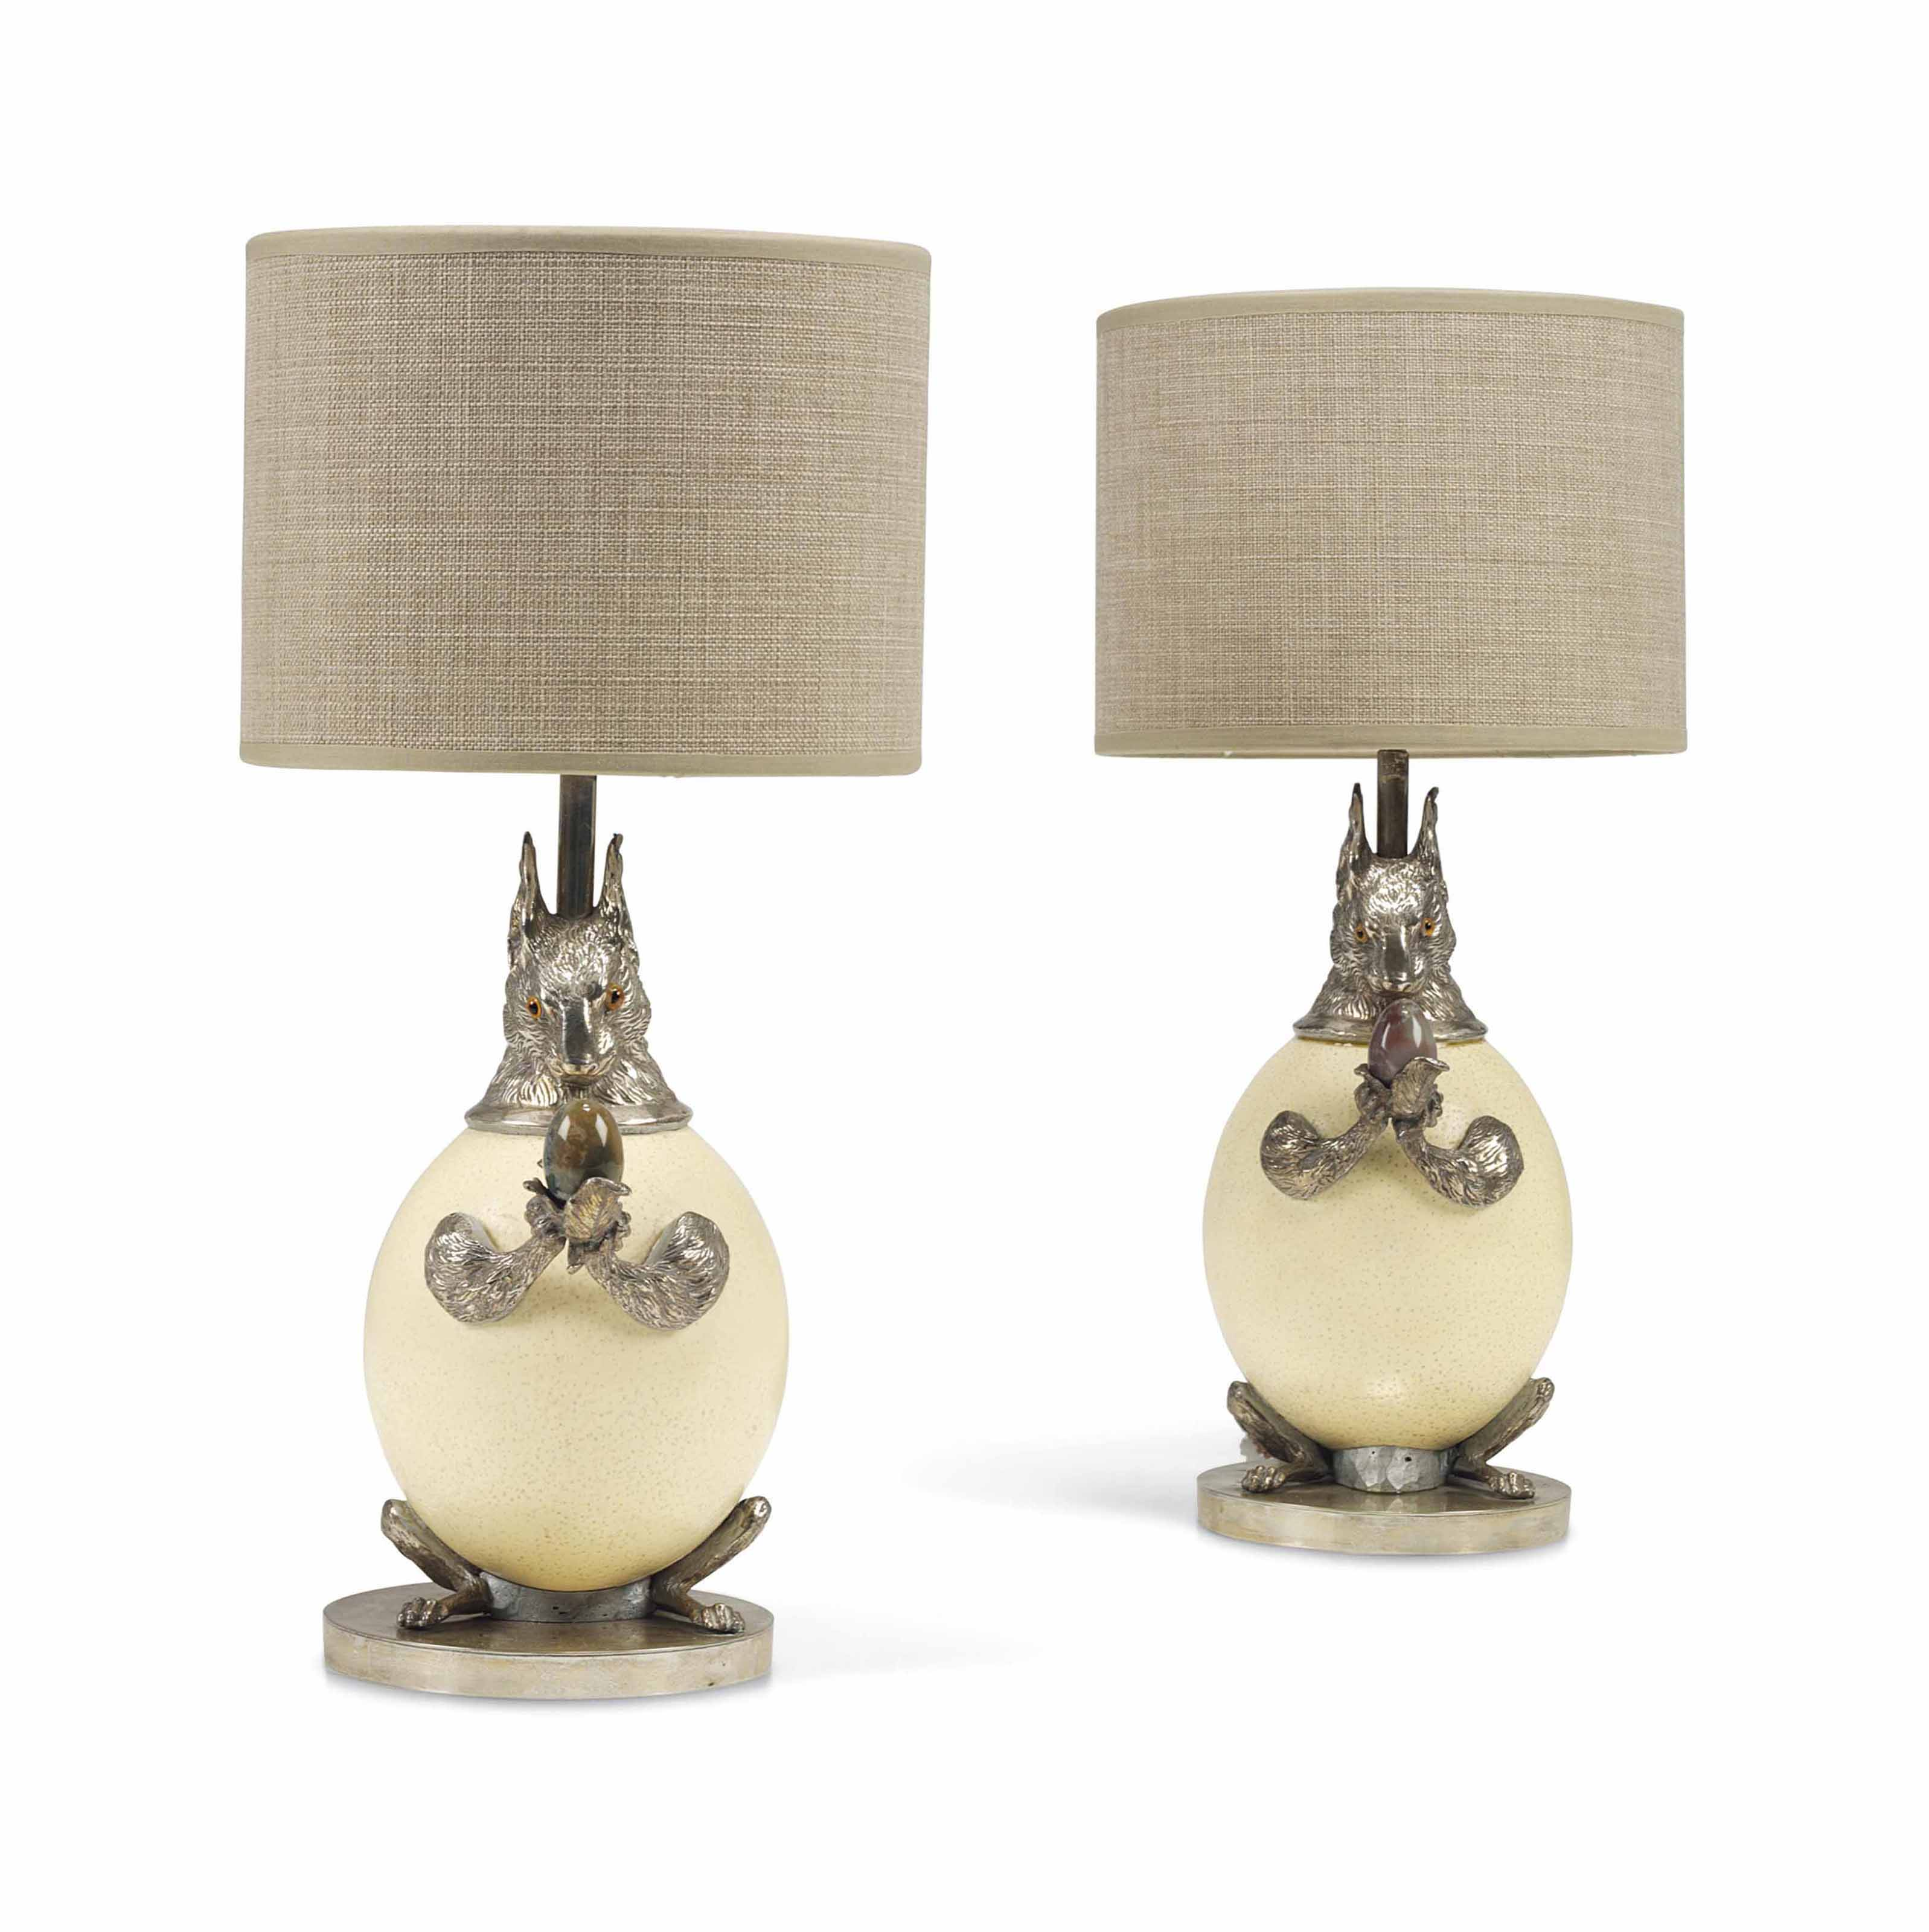 A PAIR OF ANTHONY REDMILE 'SQUIRREL' TABLE LAMPS